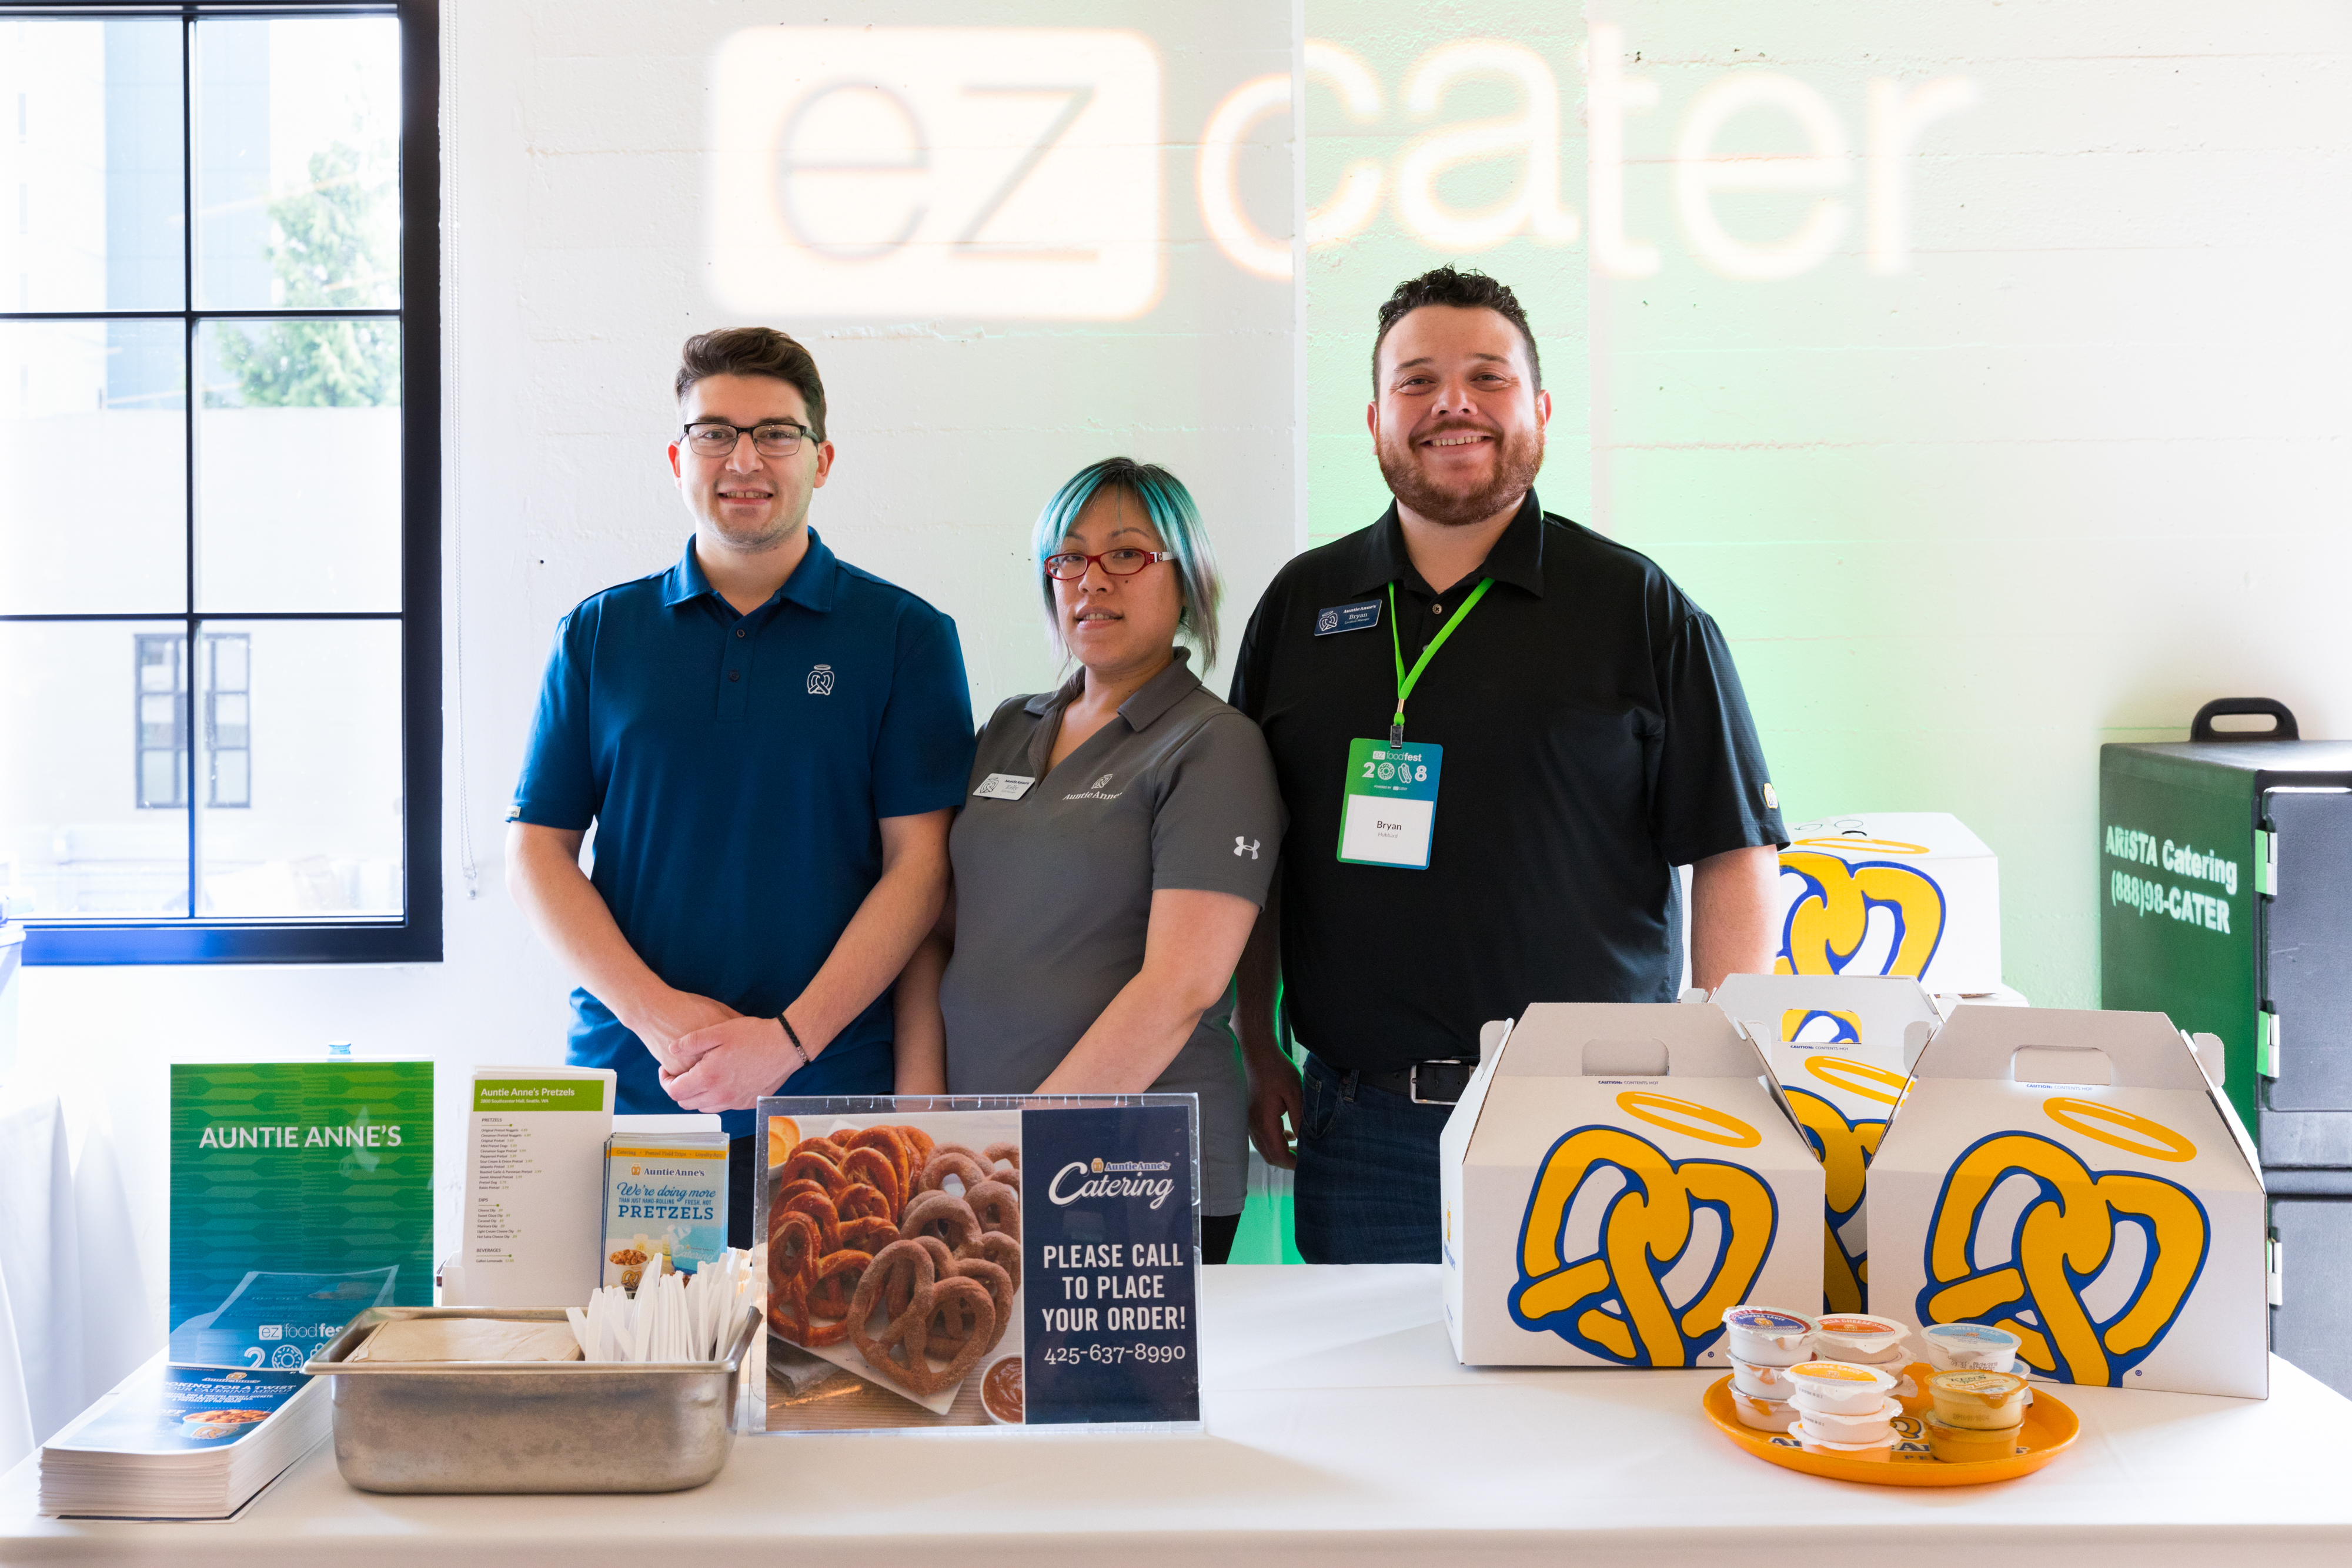 The ezCater event called ezFoodFest is a traveling food festival showcasing some of the best caterers in cities across the country.